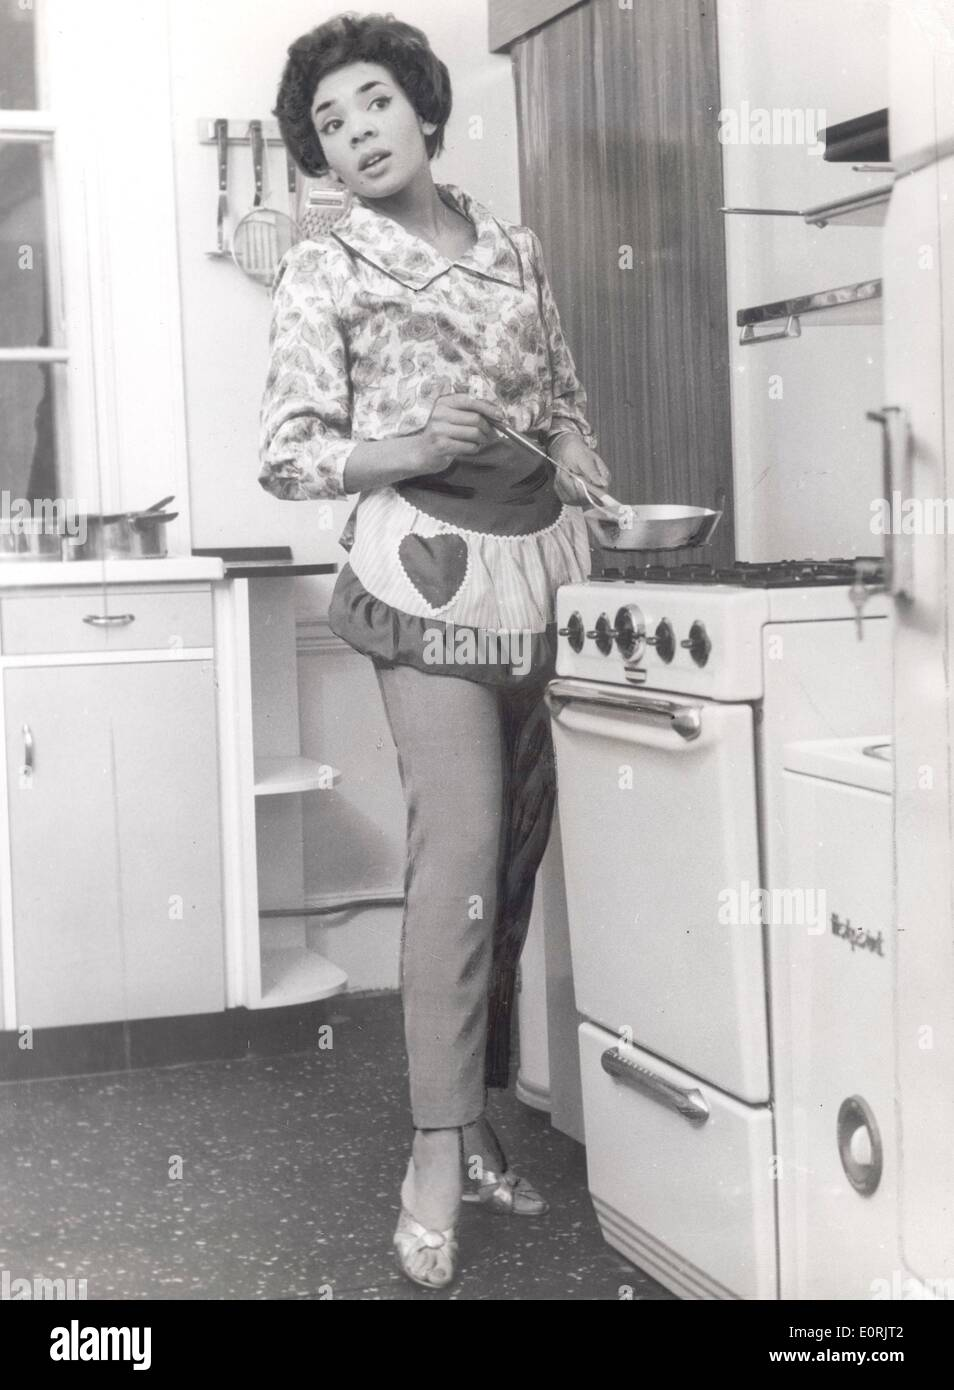 Singer Shirley Bassey in the kitchen of her new home - Stock Image